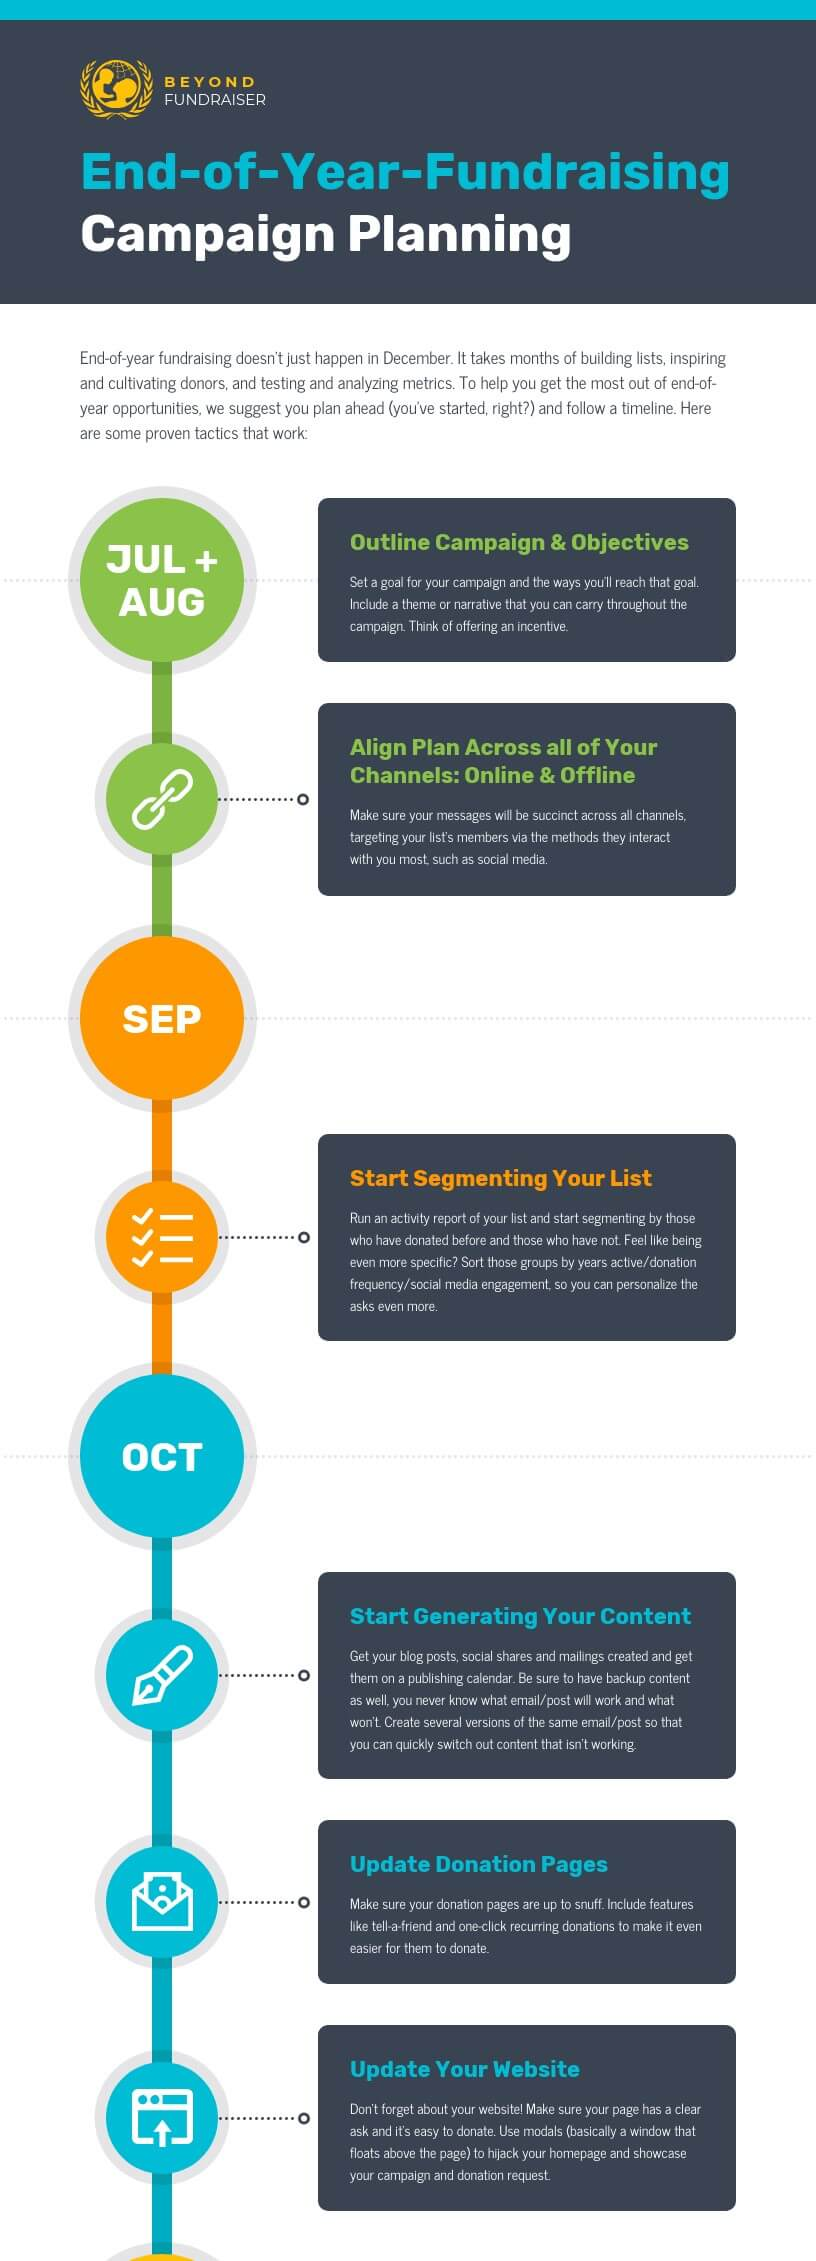 Nonprofit Fundraising Campaign Planning Timeline Infographic Template